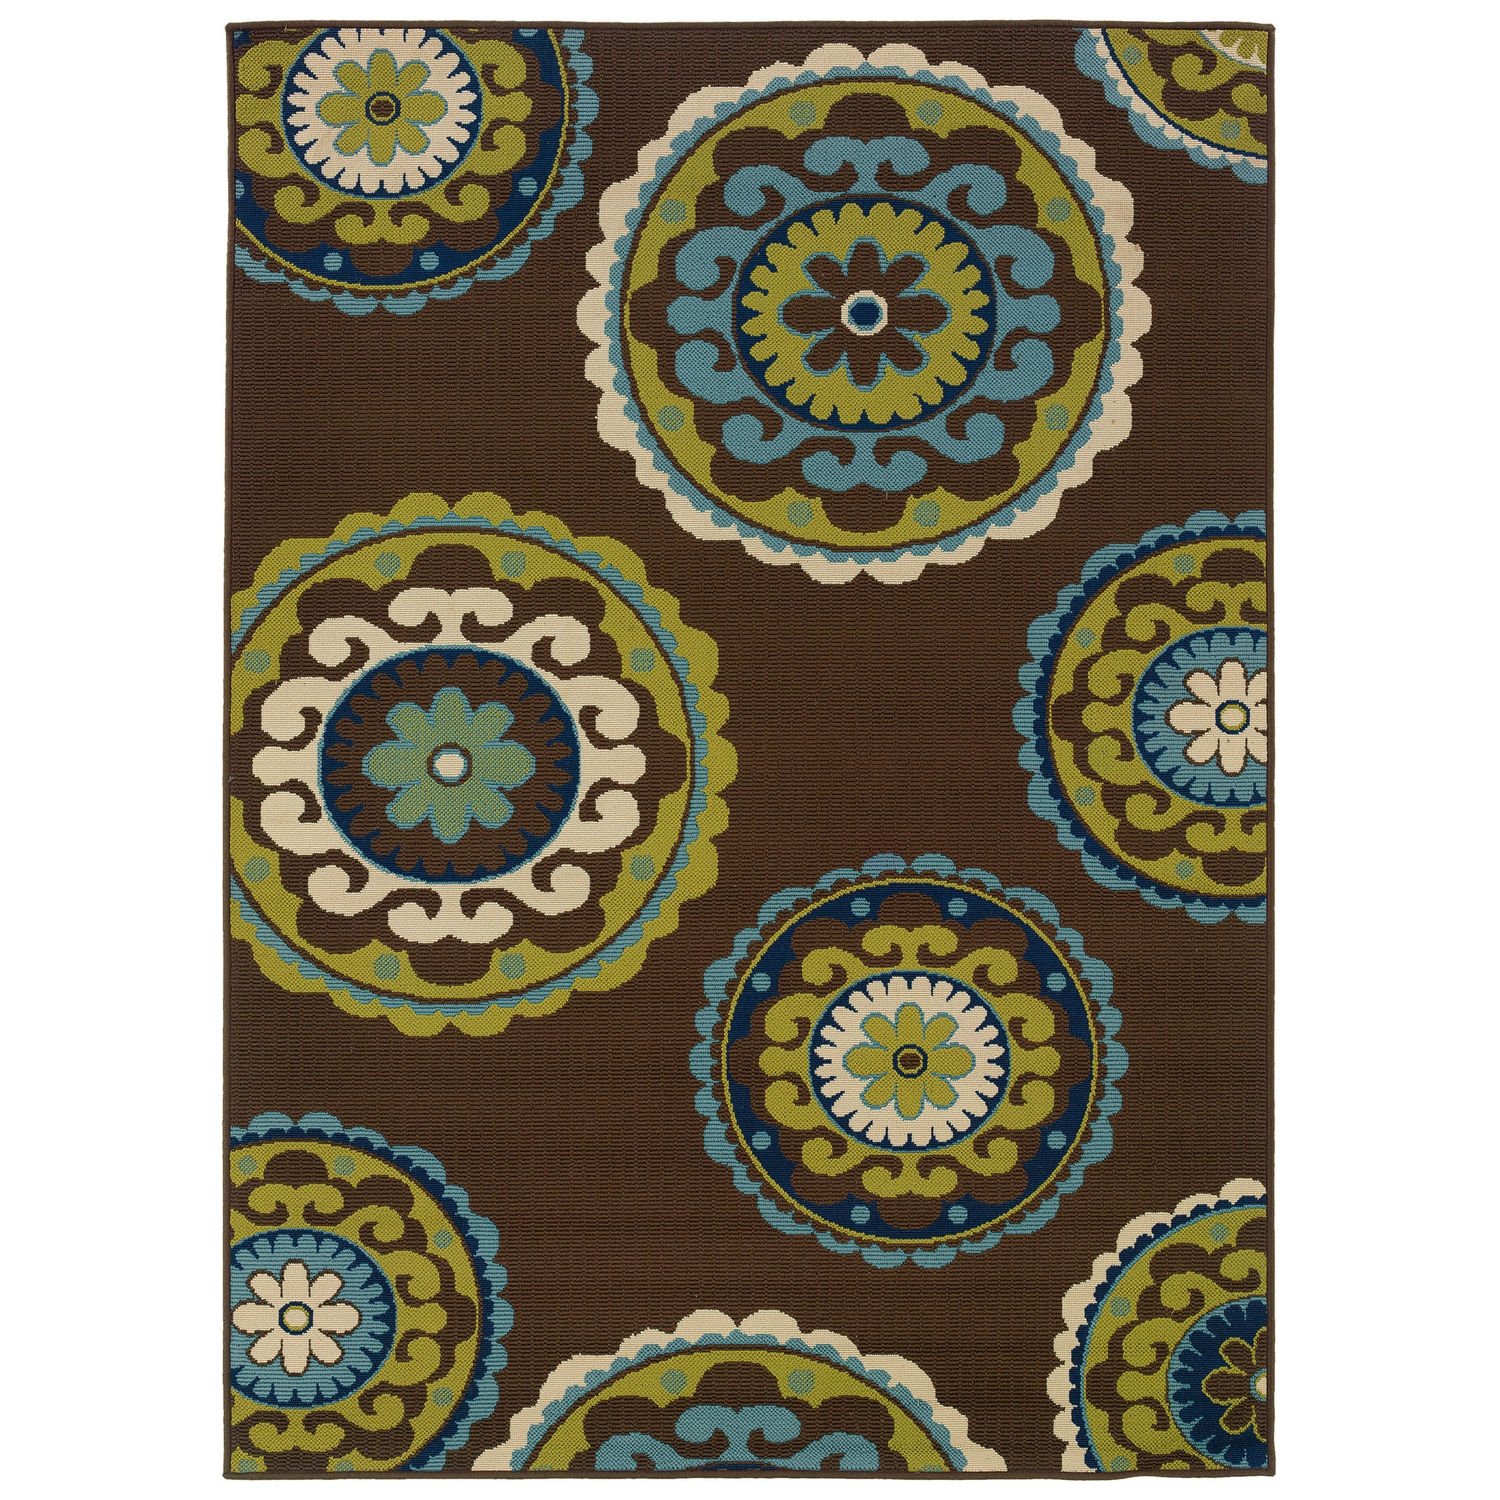 7 10 x 10 10 outdoor indoor area rug in brown teal green yellow circles